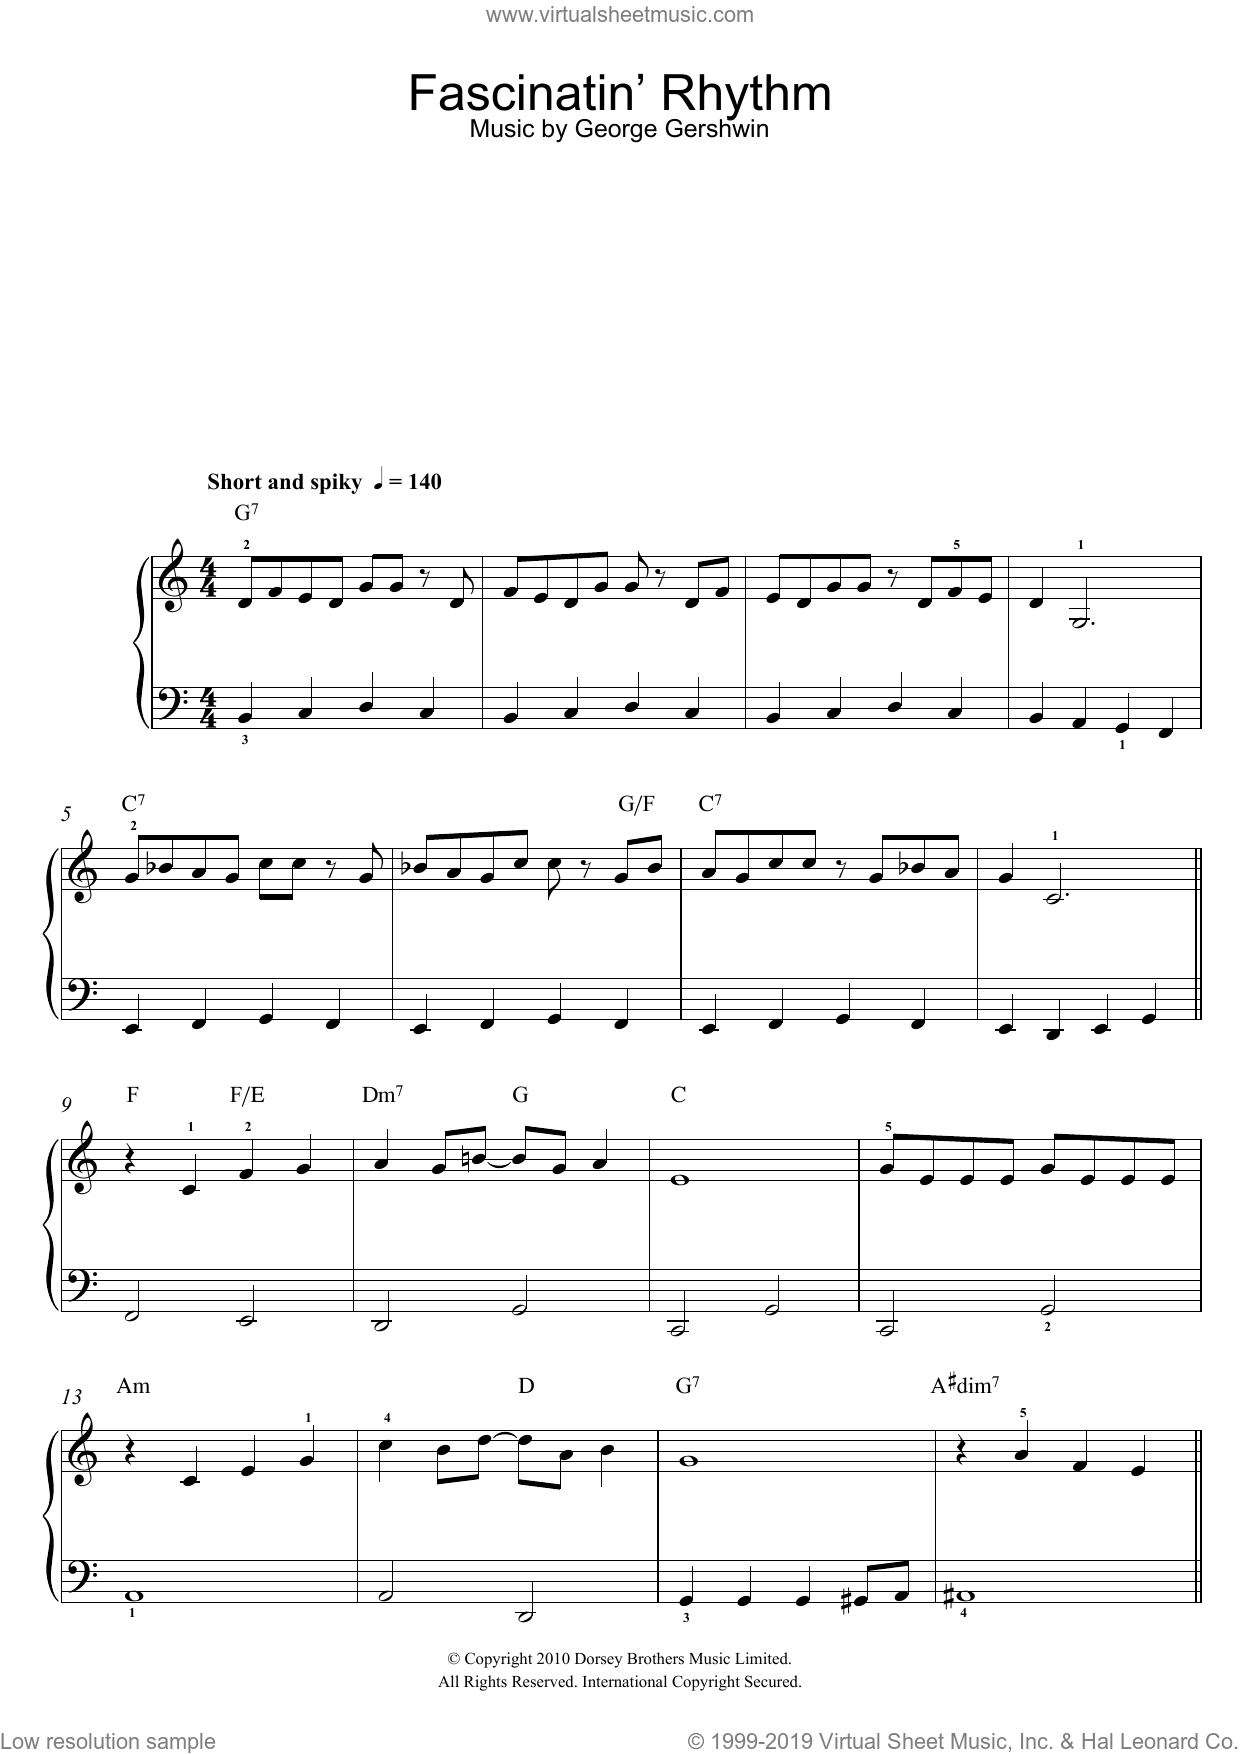 Fascinating Rhythm sheet music for piano solo by George Gershwin